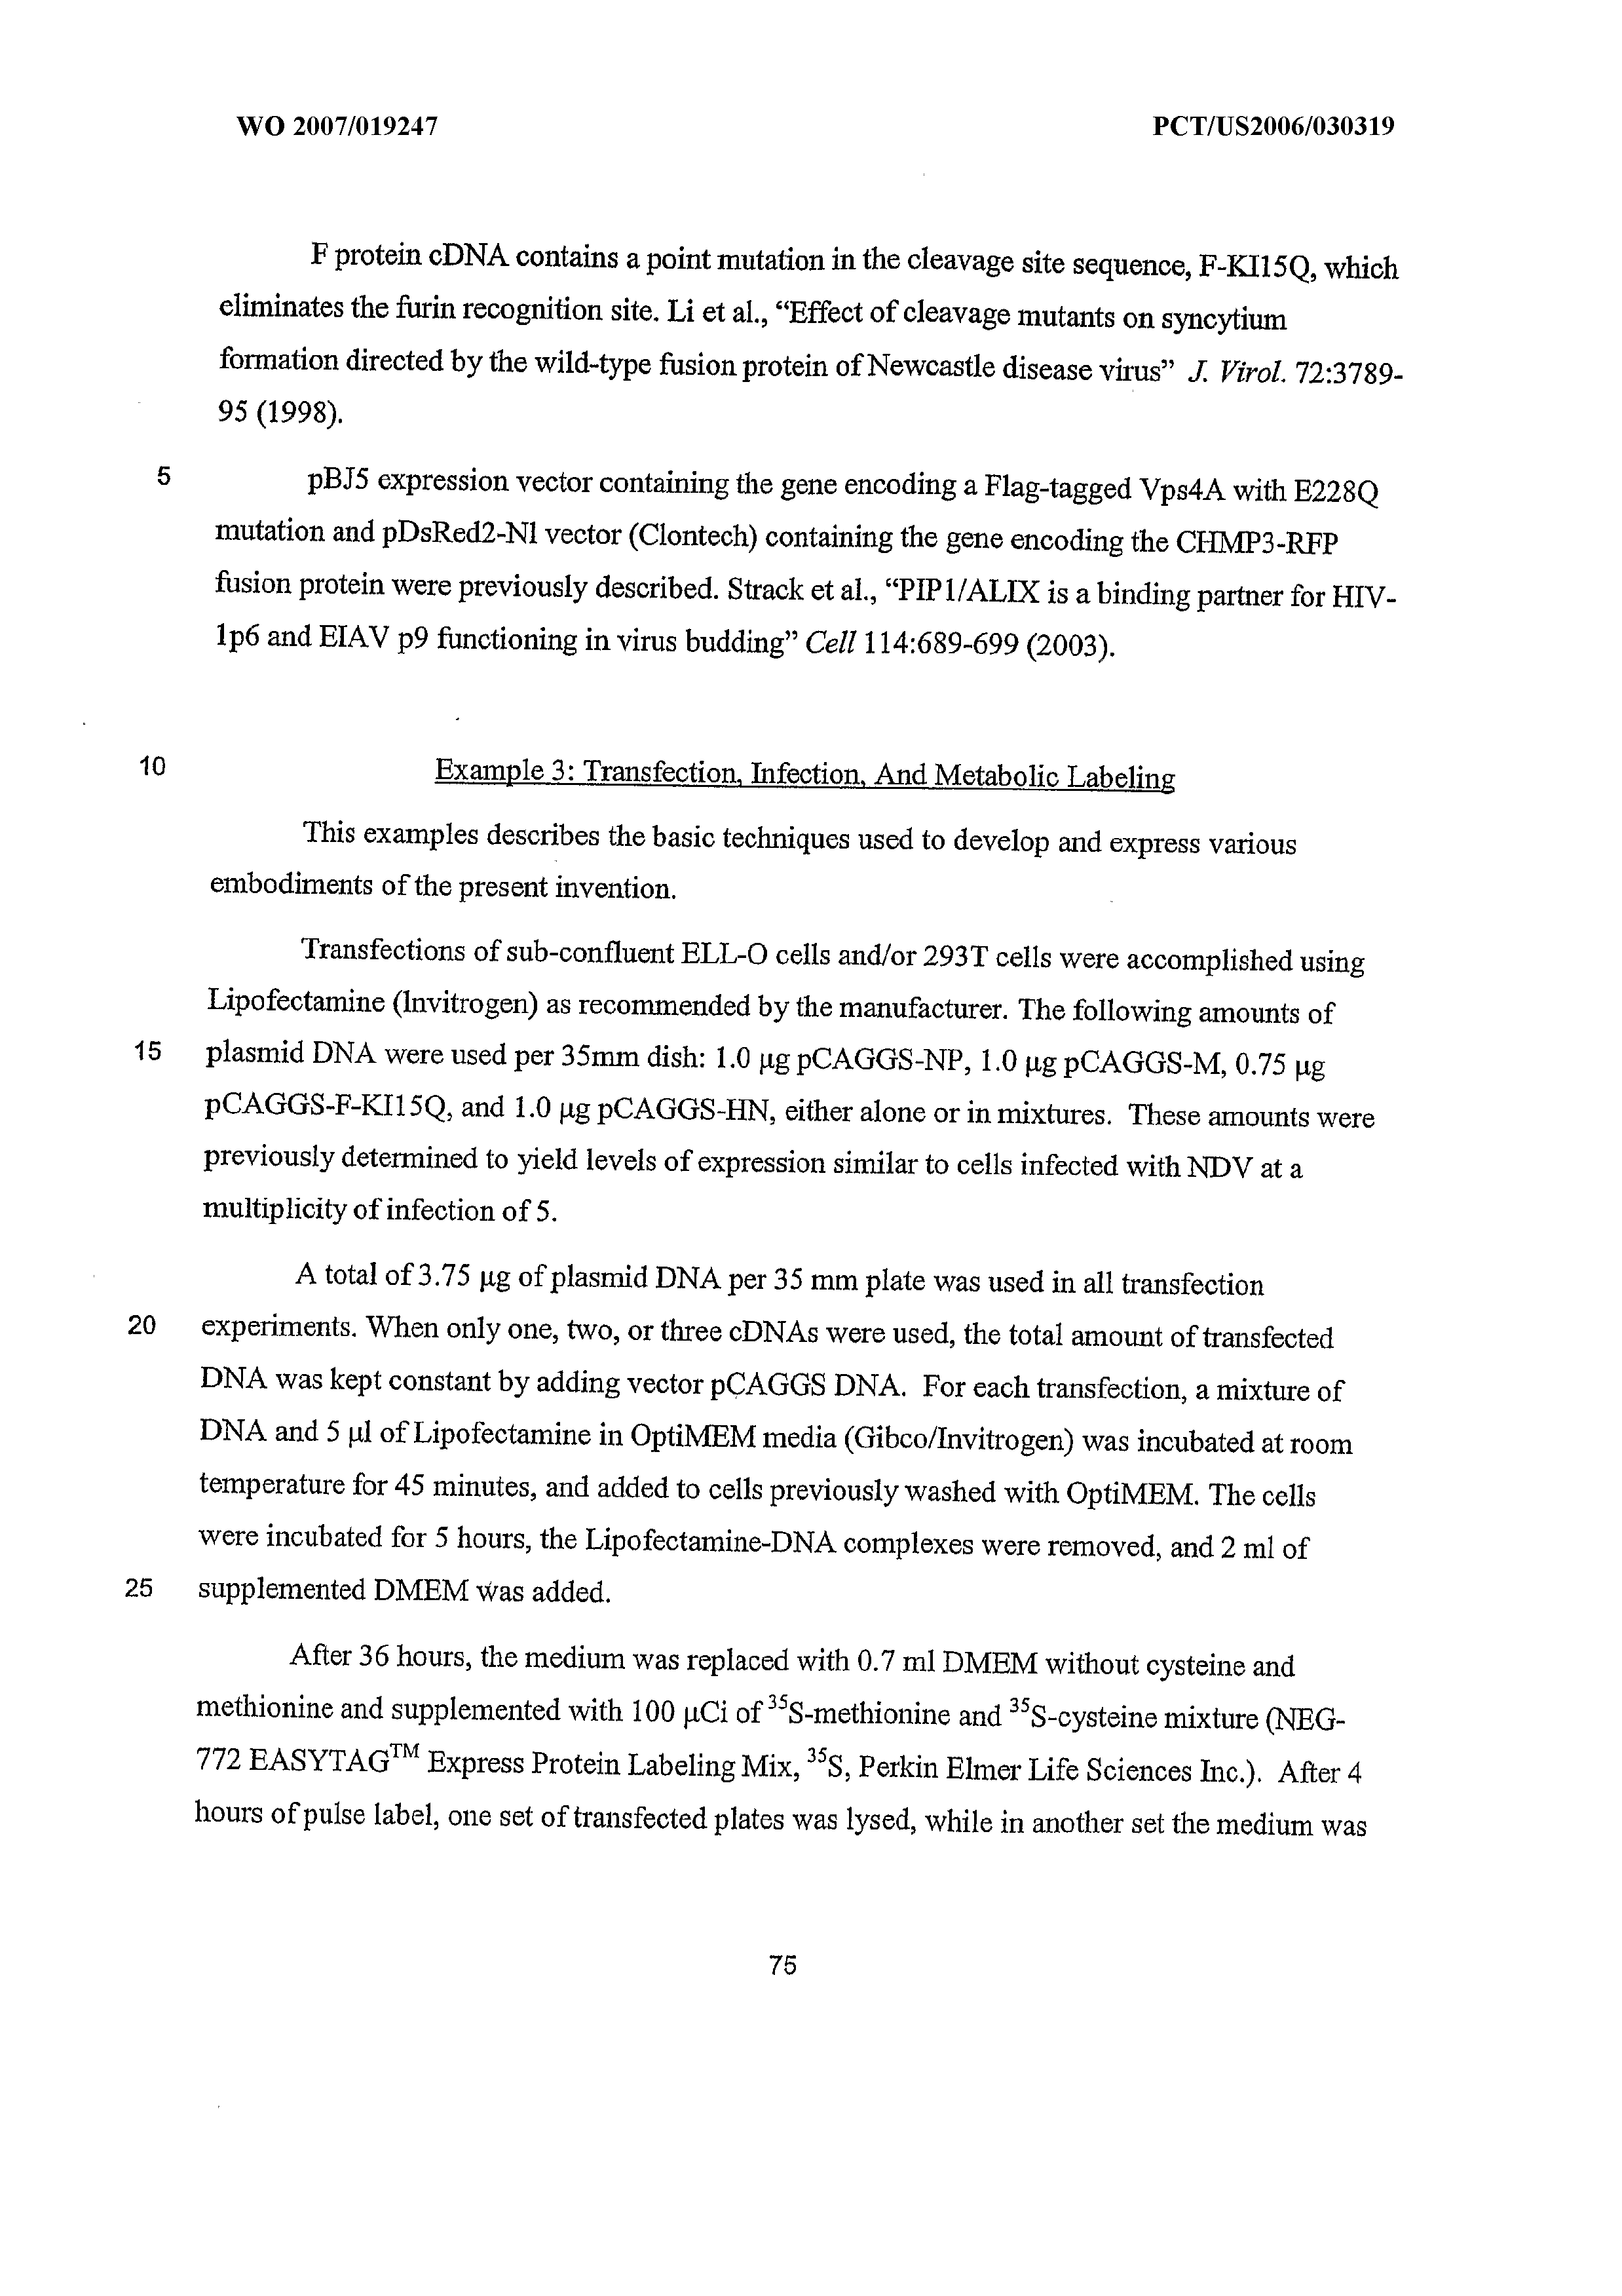 WO 2007/019247 A2 - Virus-like Particles As Vaccines For